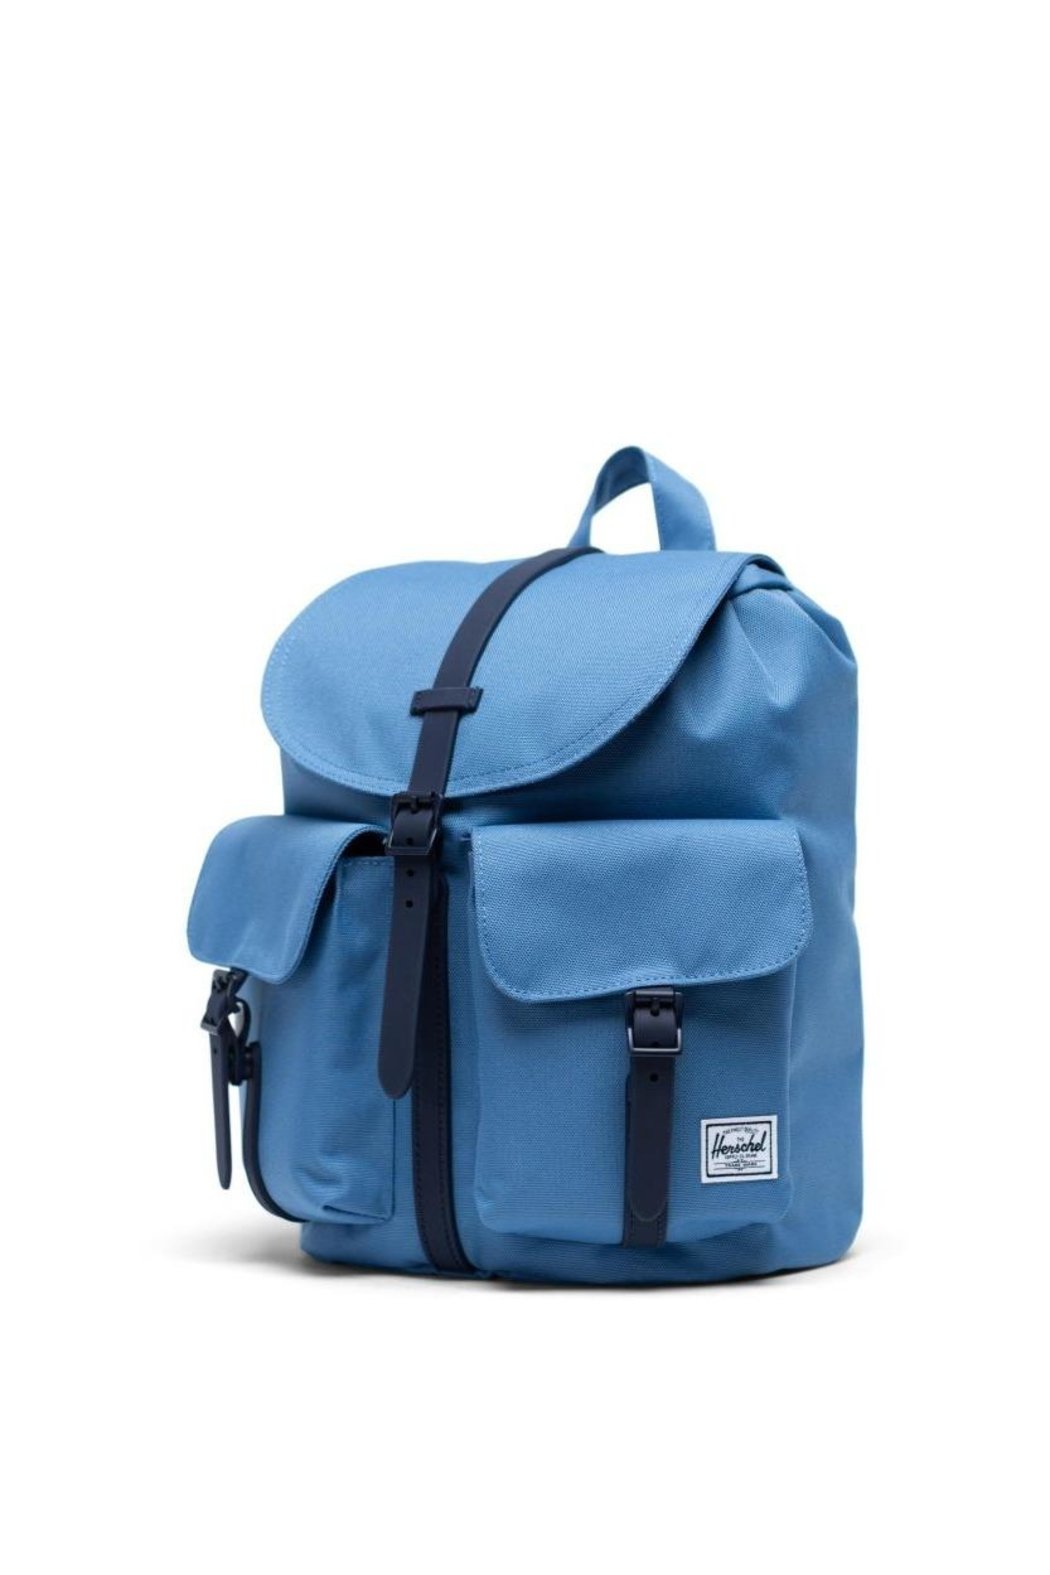 Herschel Supply Co. Small Blue Backpack - Side Cropped Image